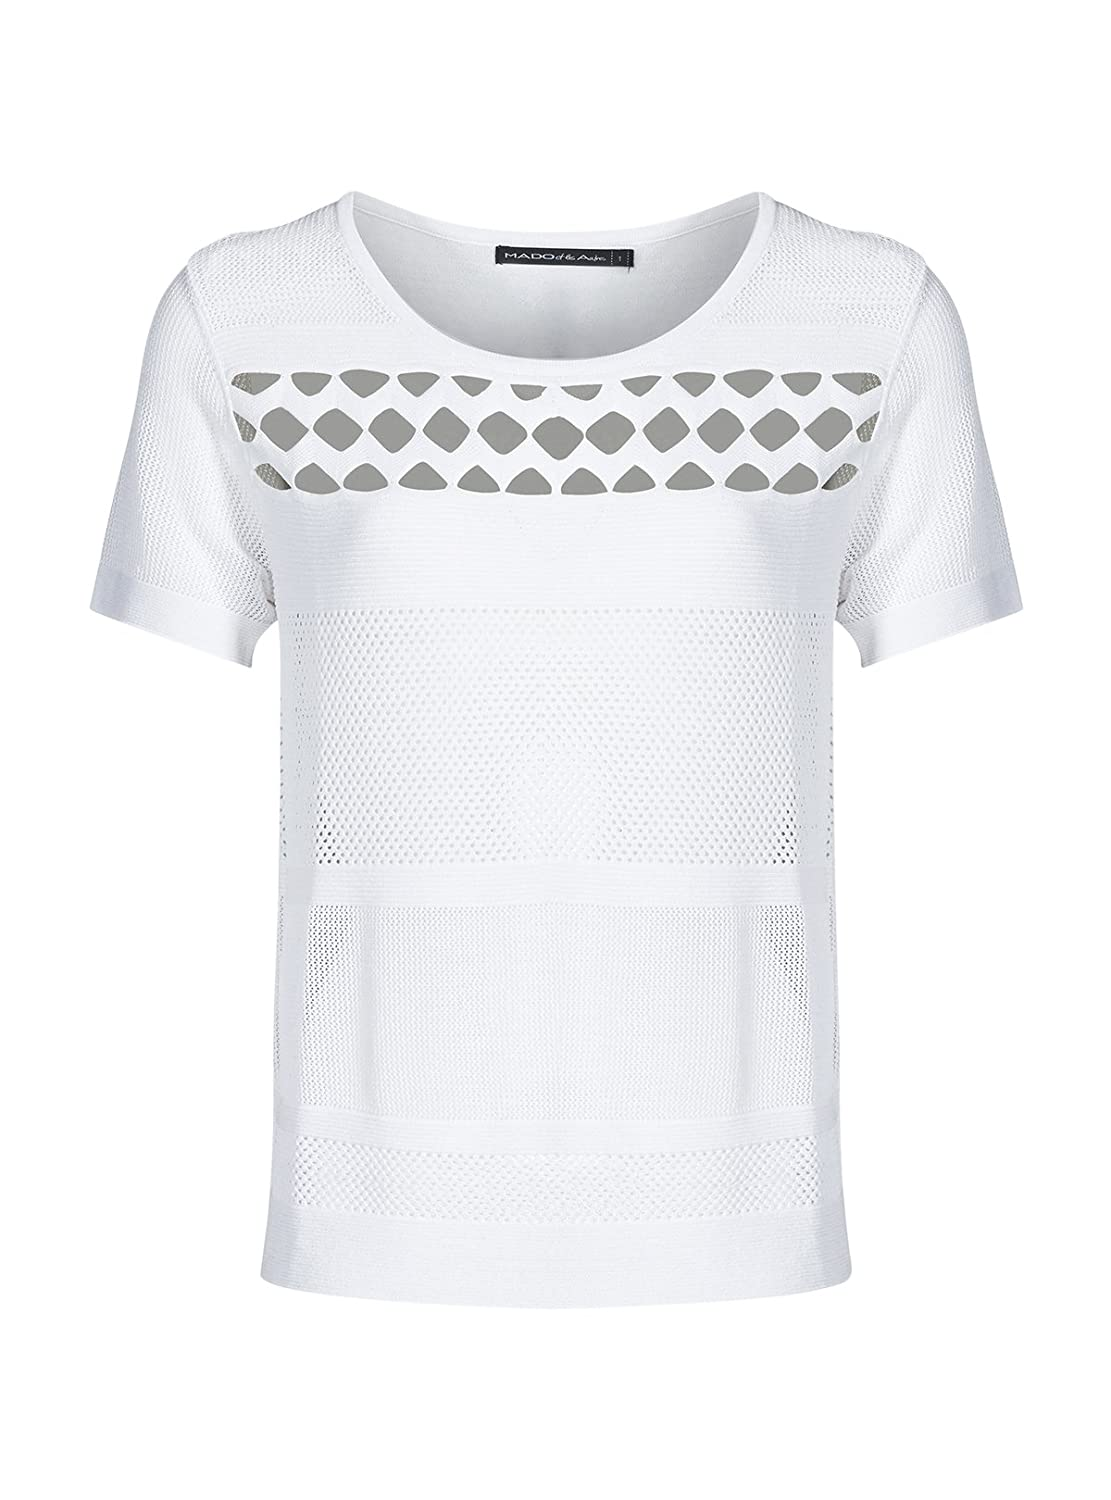 MADO ET LES AUTRES Knitted Polyamide Viscose t-Shirt Summer Collection Women